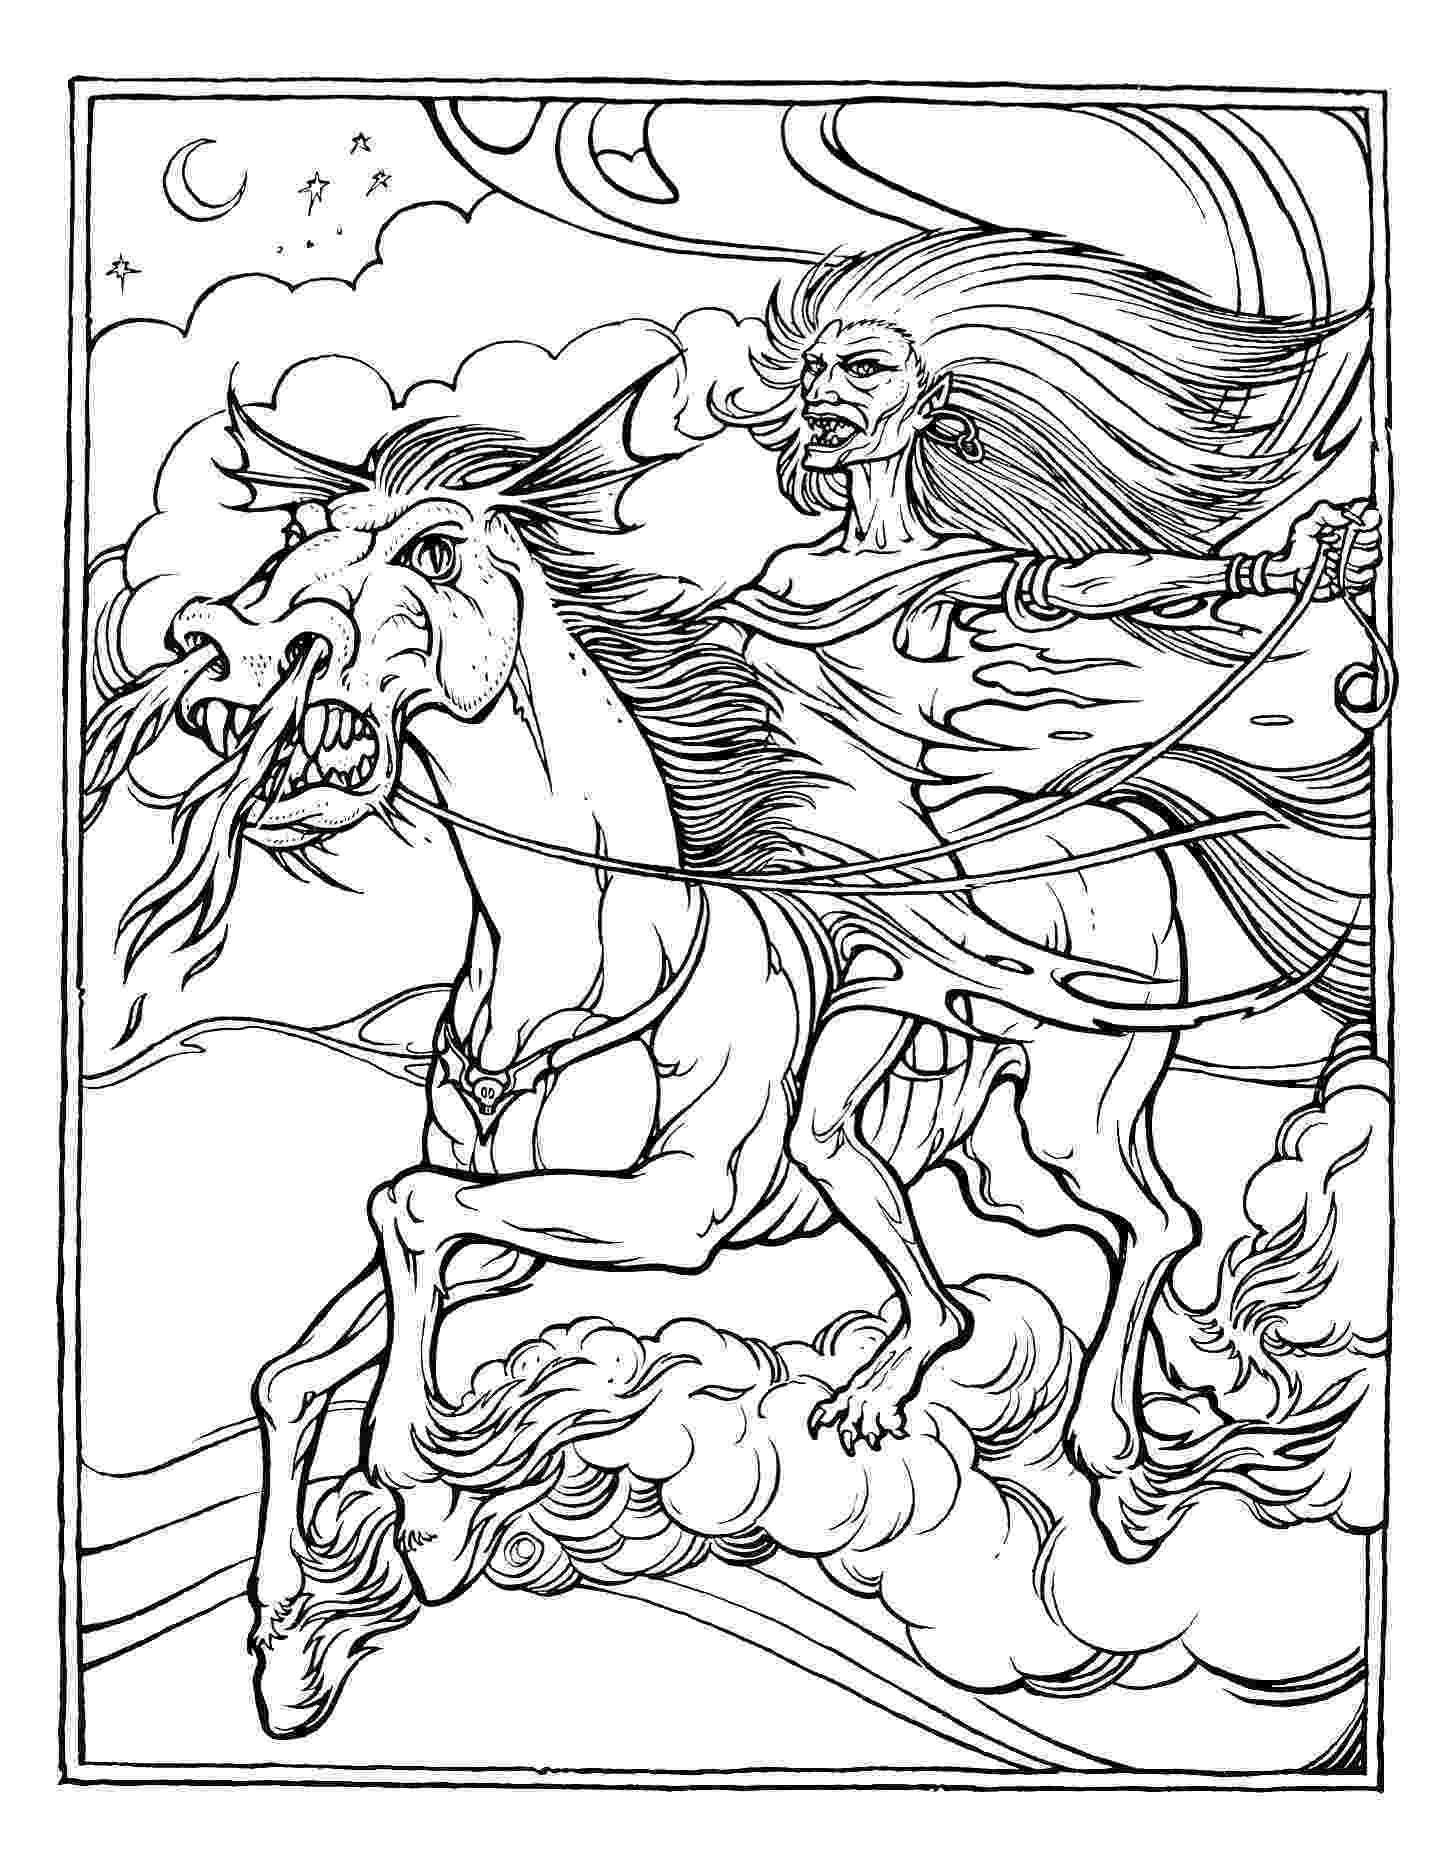 dragon coloring pages to print printable dragon coloring pages for kids cool2bkids coloring print dragon to pages